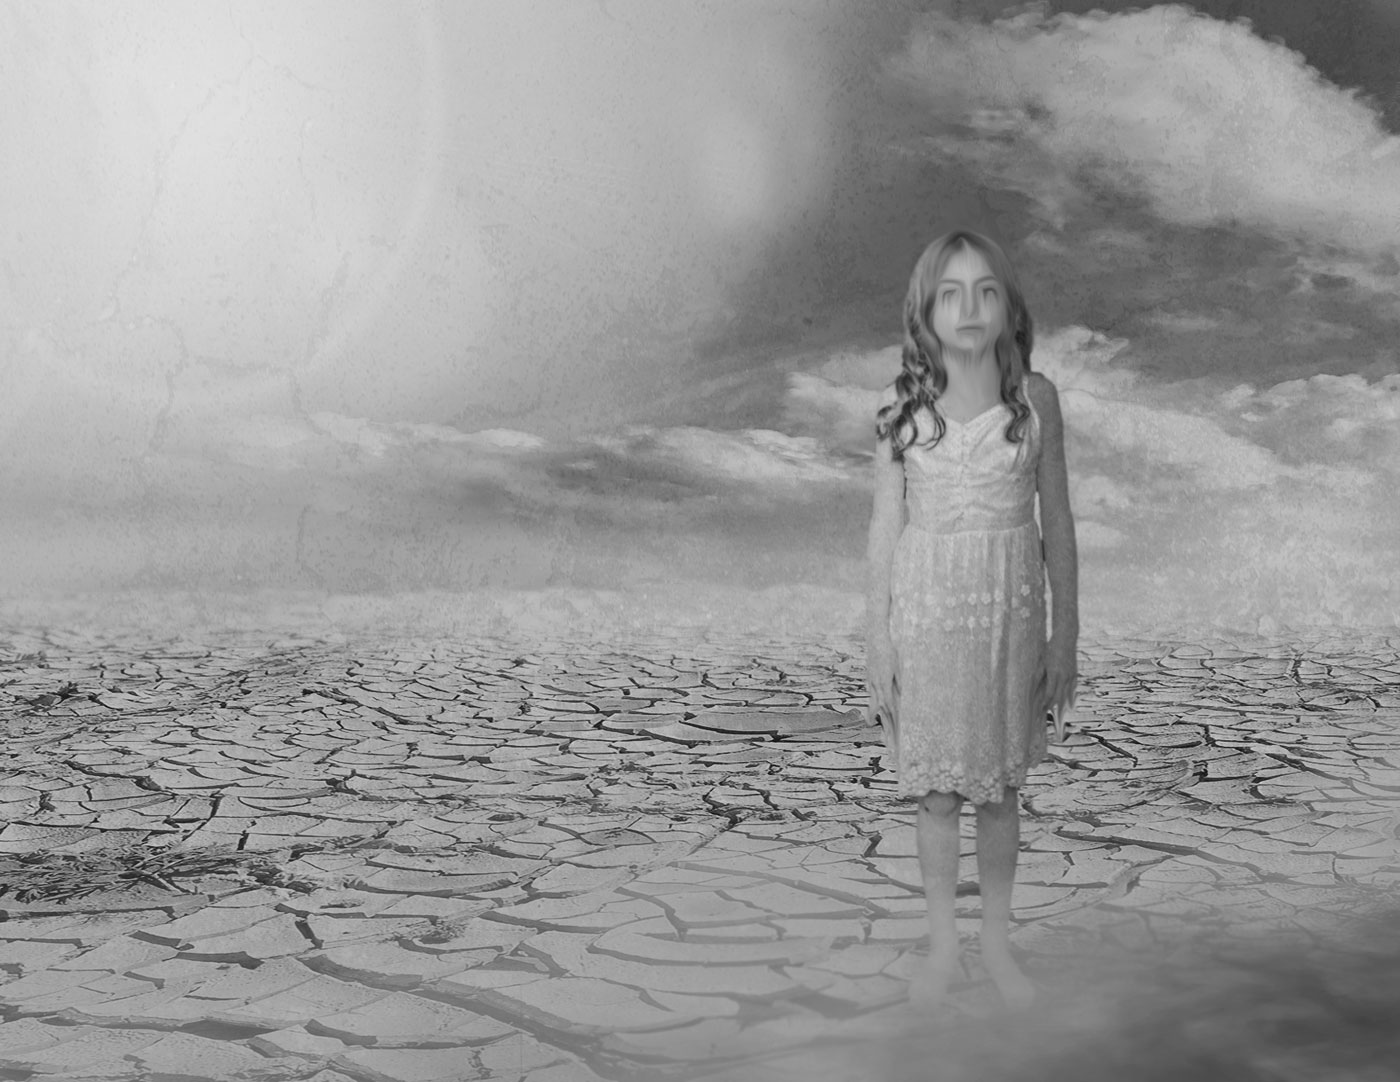 A girl with blurred eyes wearing a shift stands barefoot on a cracked, lifeless desert under a huge sun.